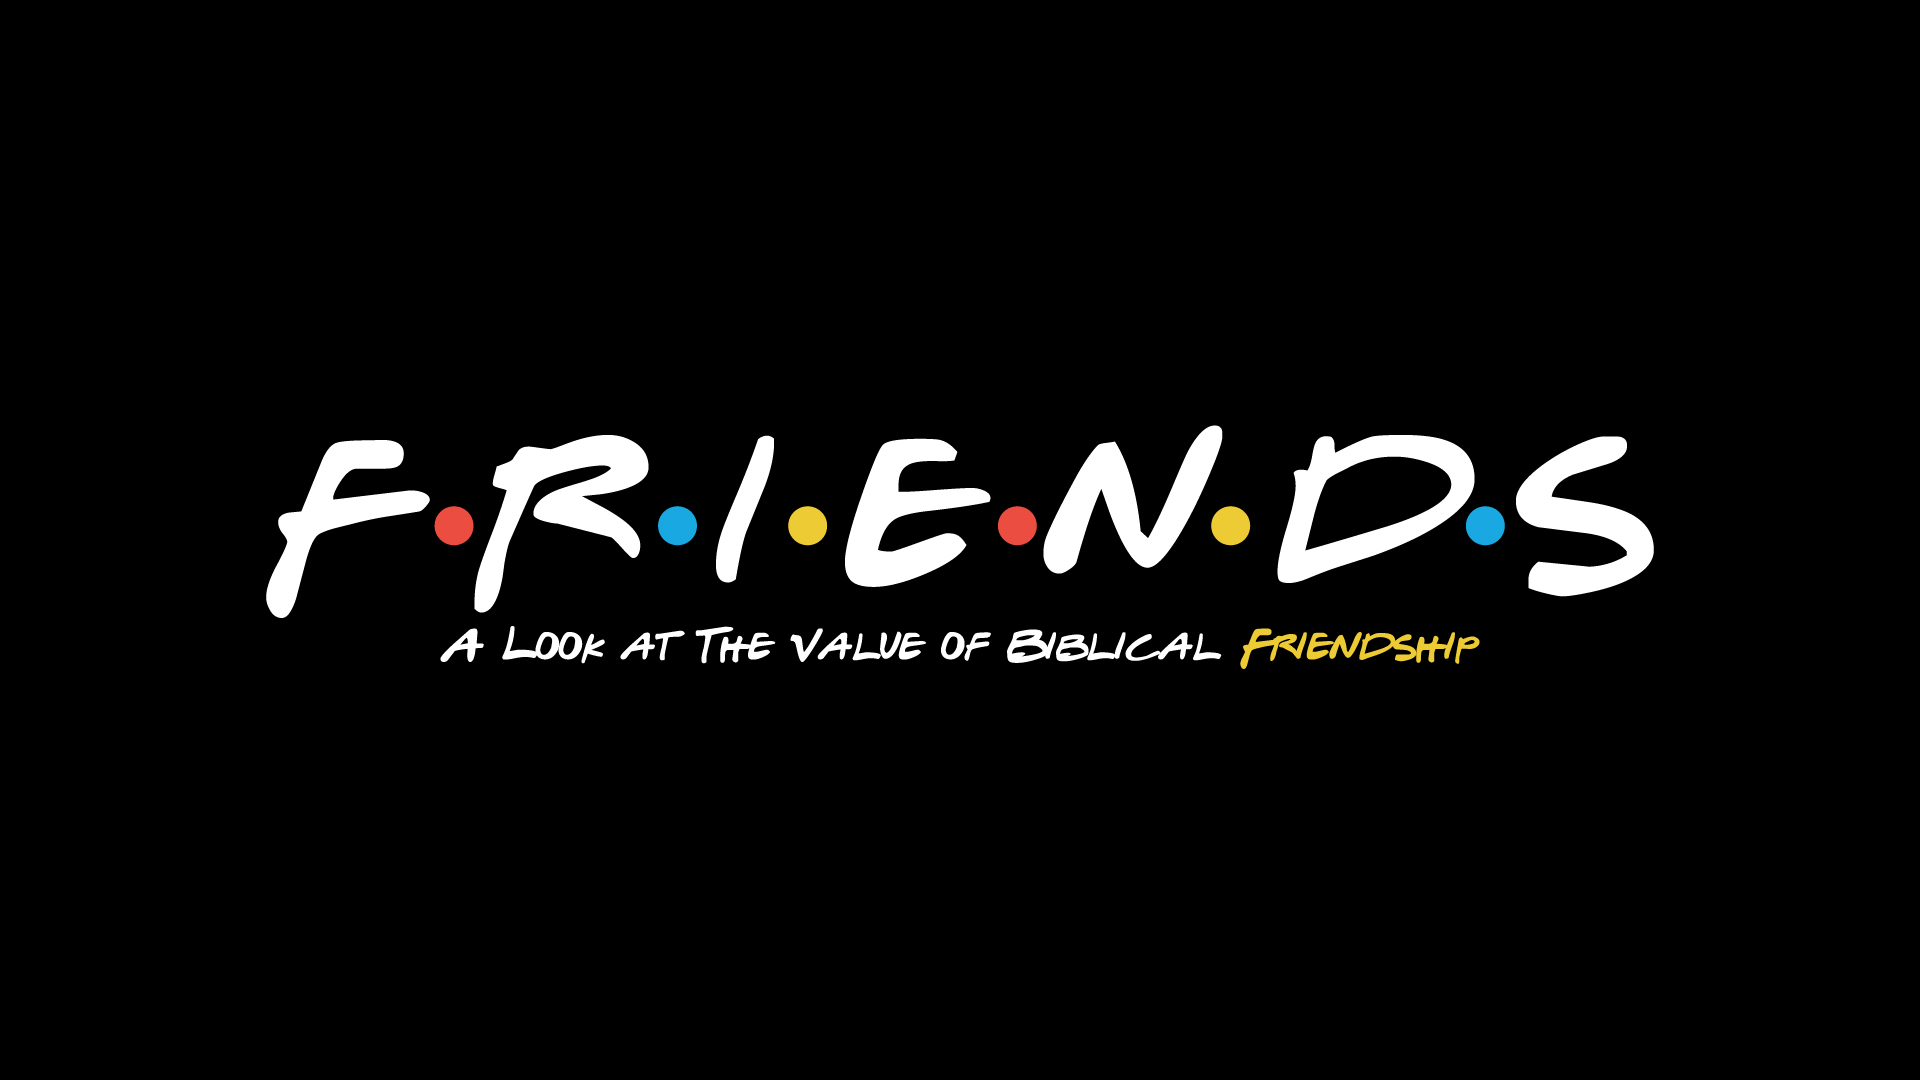 The Biblical Value Of Friendship